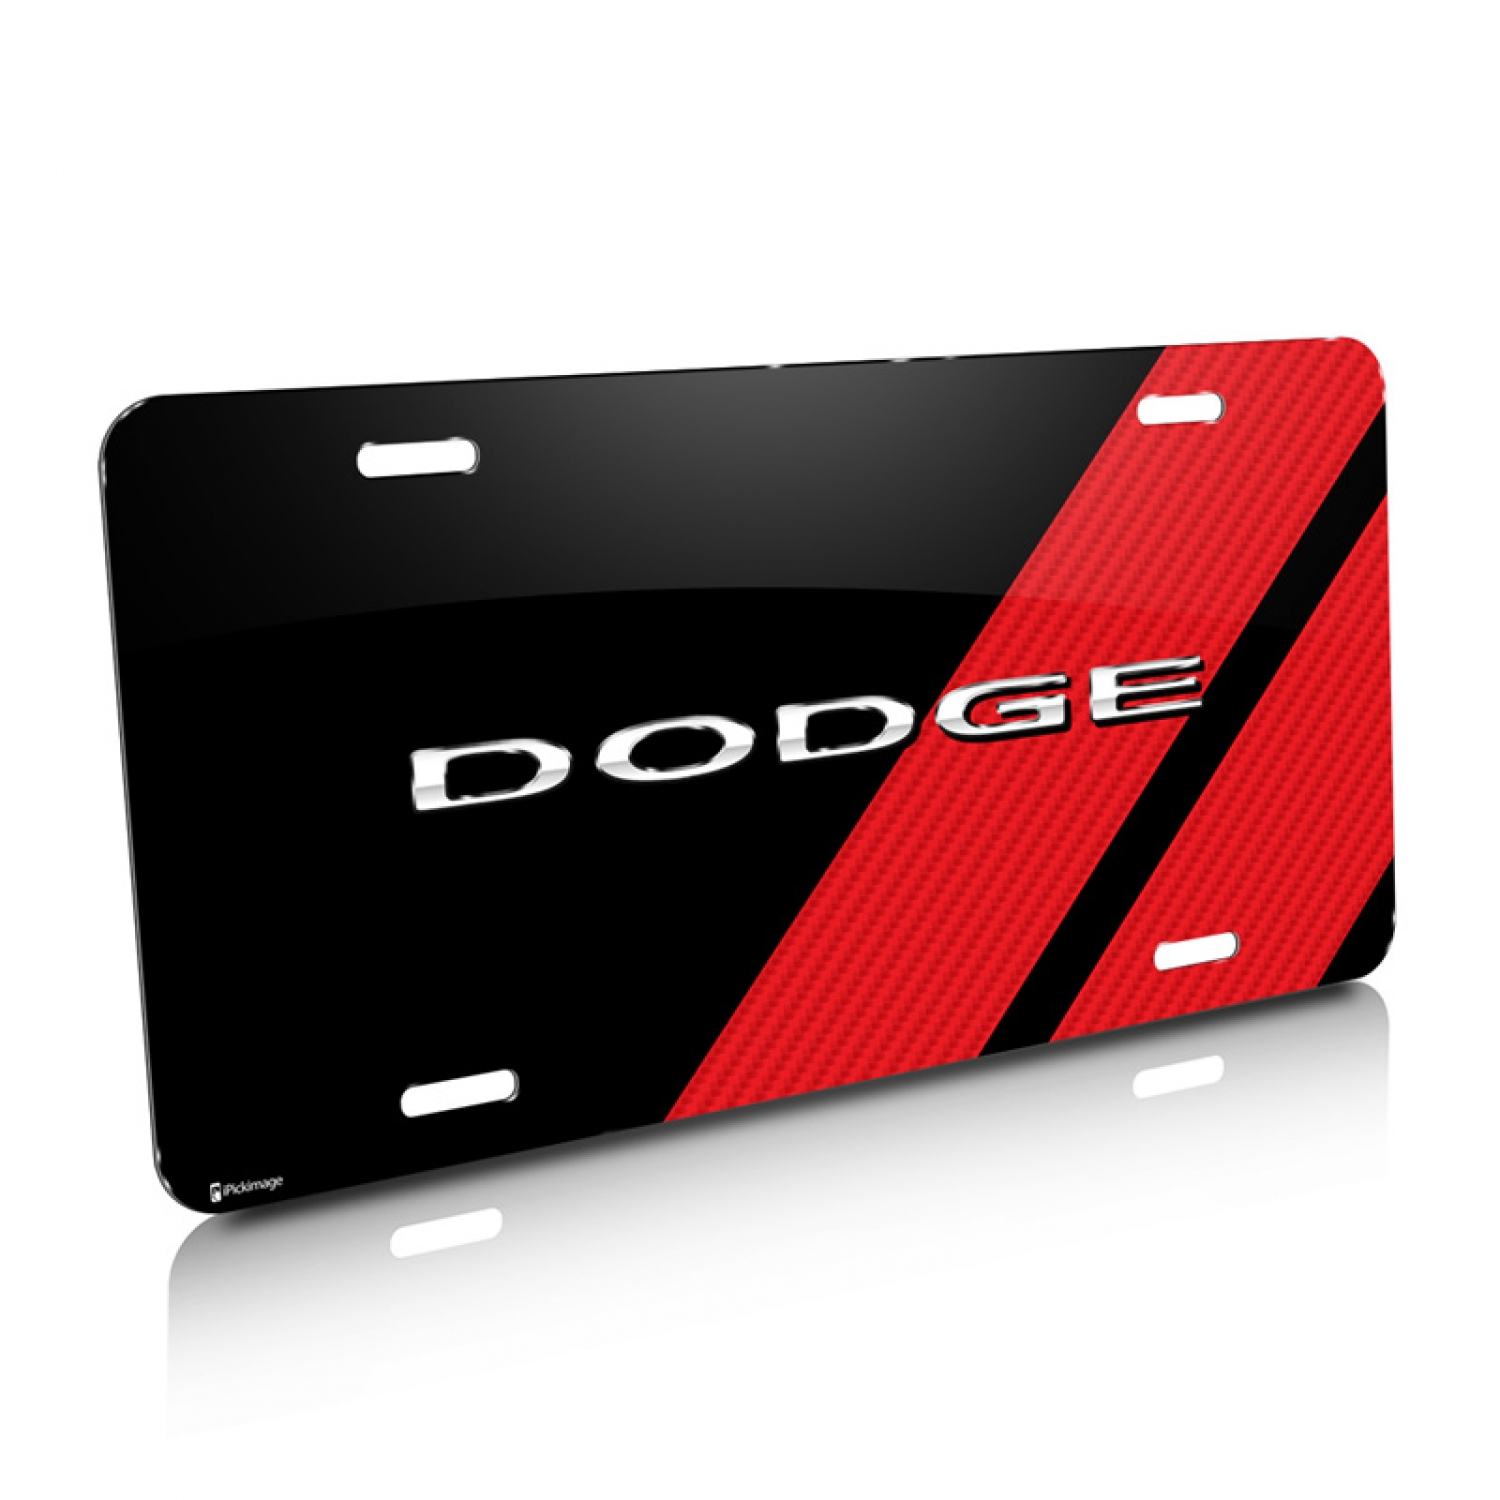 Dodge Carbon Fiber Look Red Stripe Graphic Aluminum License Plate